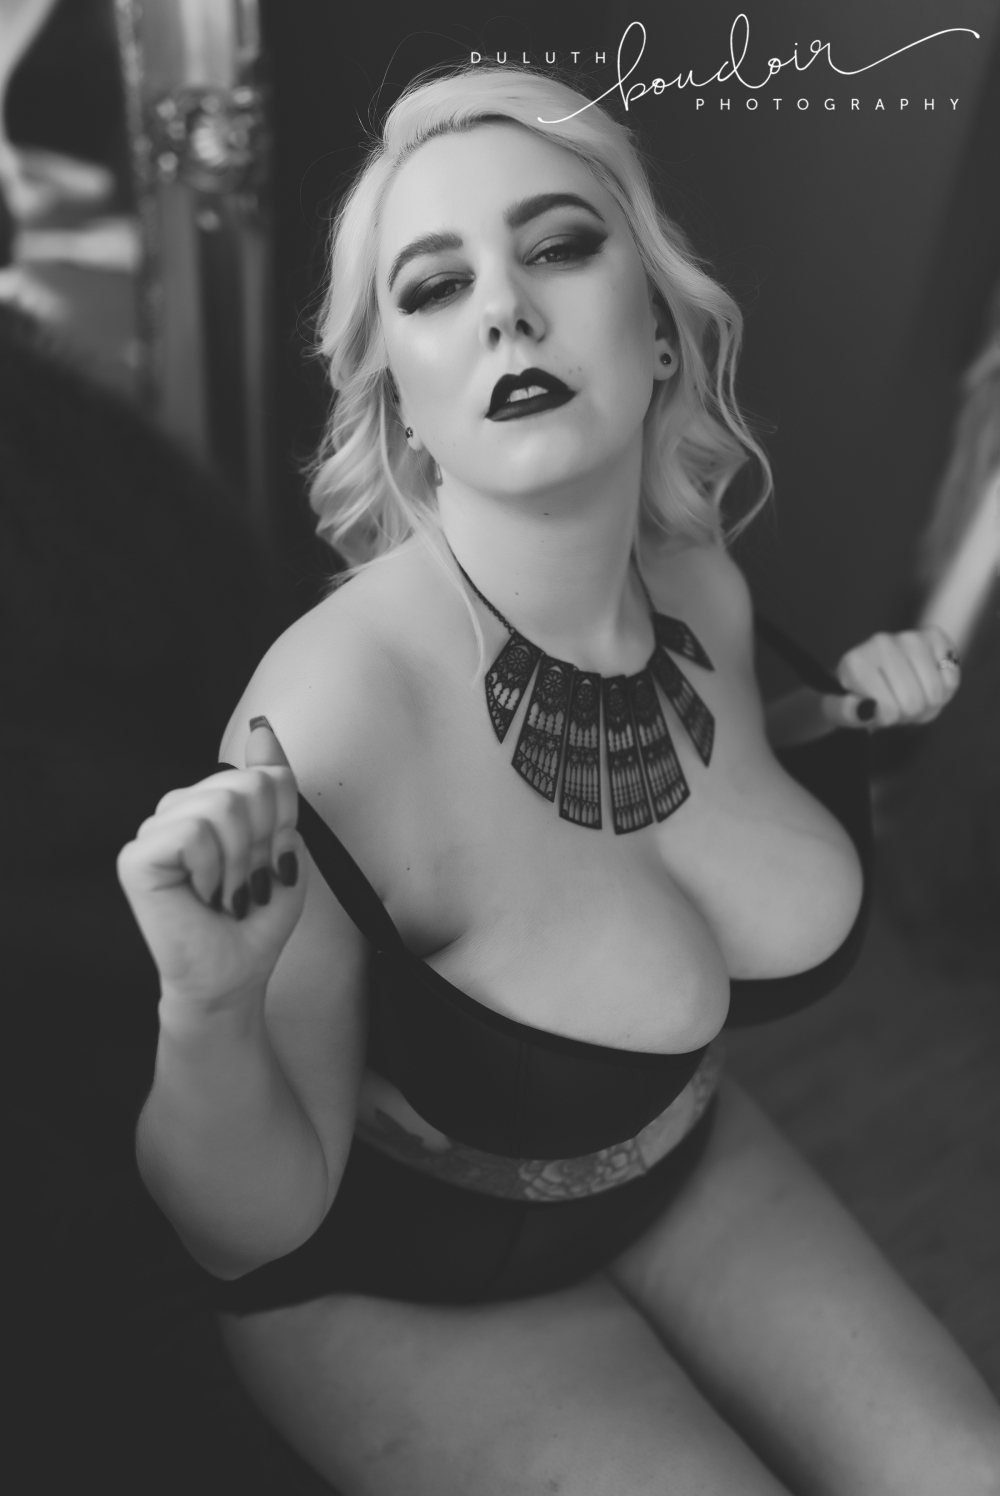 duluth_boudoir_photography_holly_29